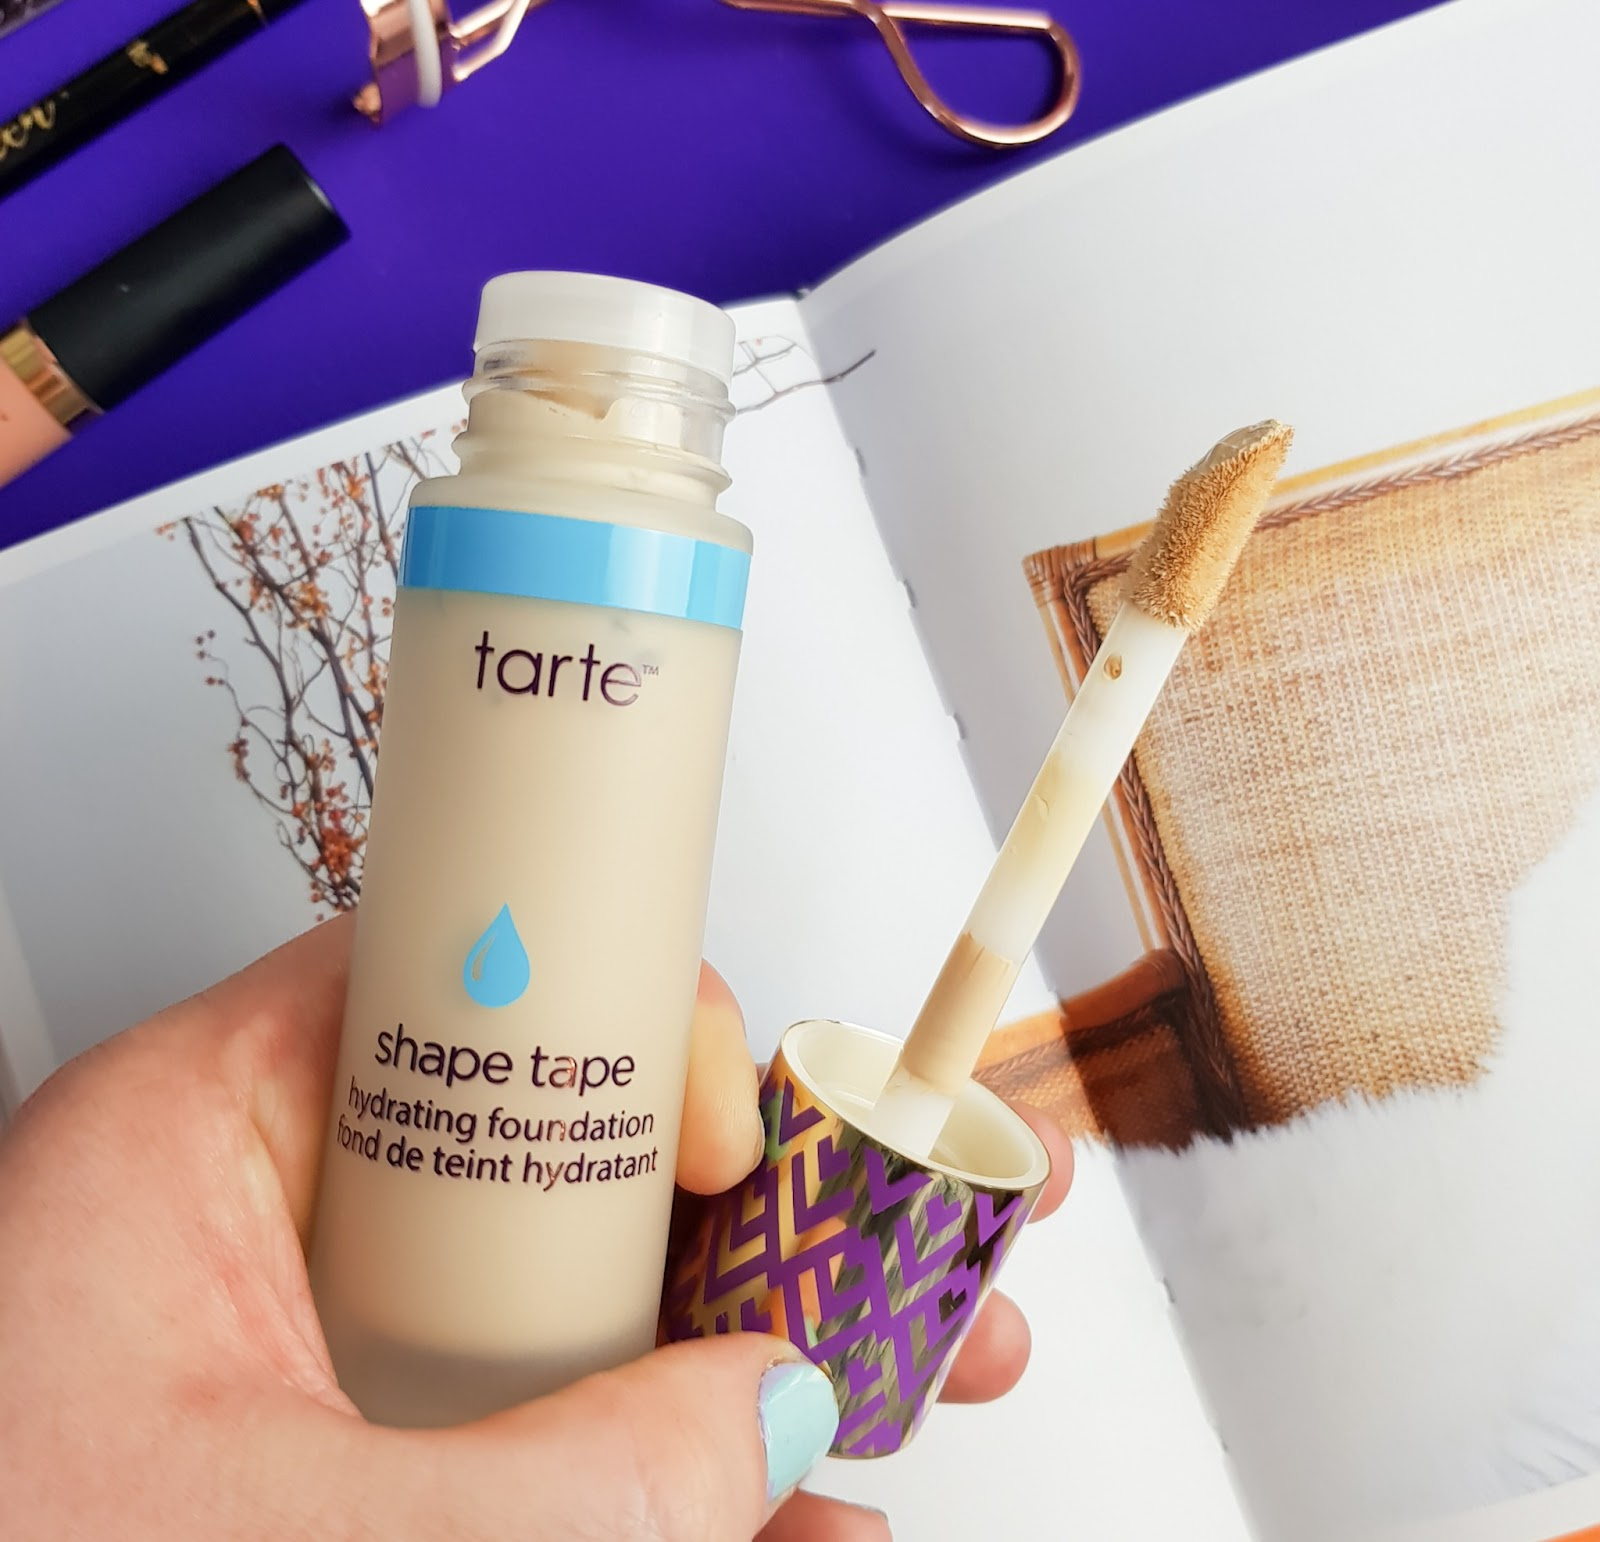 Tarte Make Up Shape Tape Hydrating Foundation